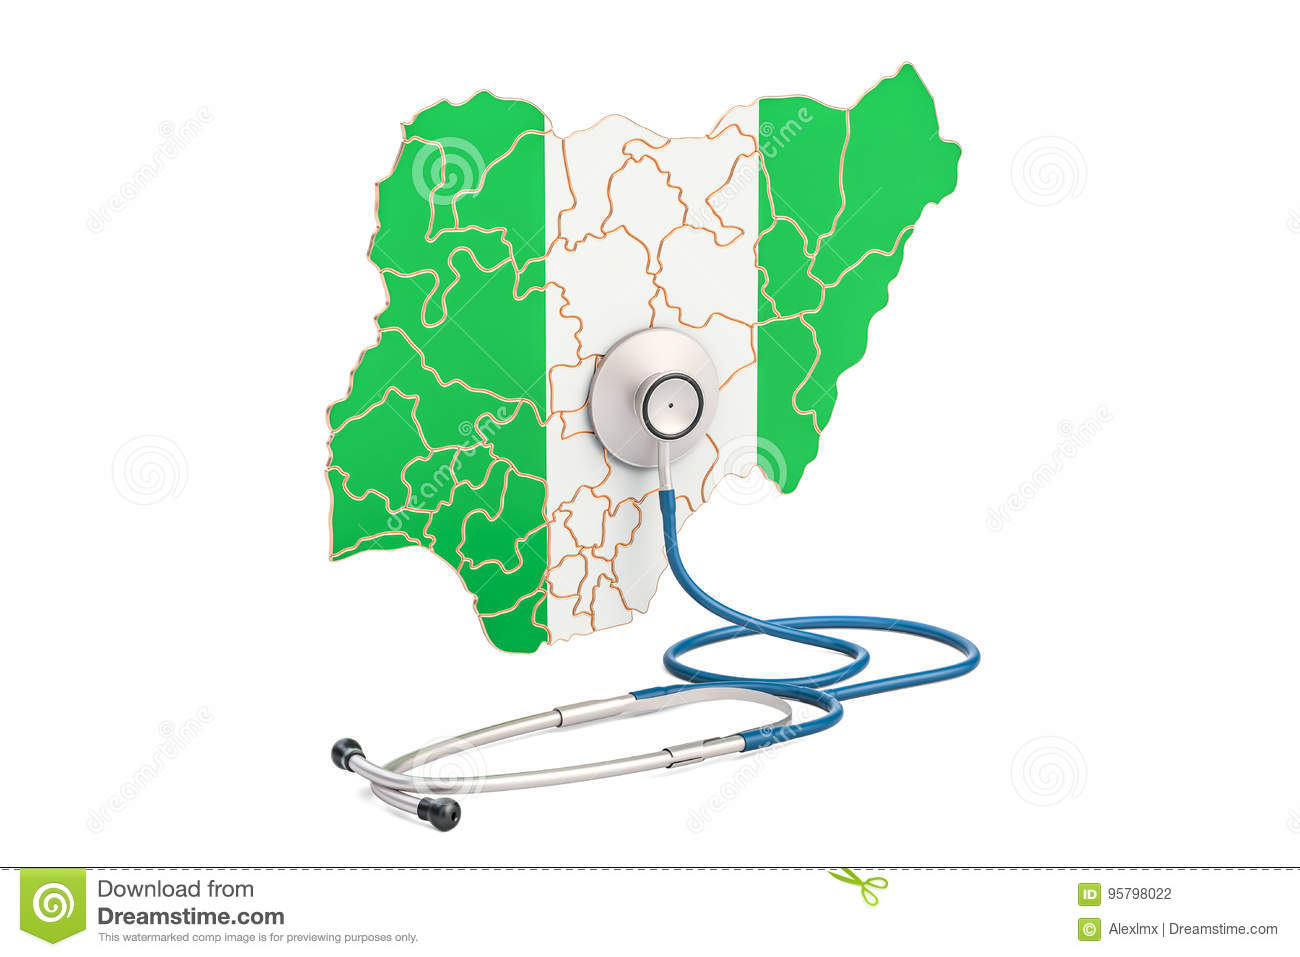 Nigerian map with stethoscope national health care concept 3d nigerian map with stethoscope national health care concept 3d ccuart Choice Image